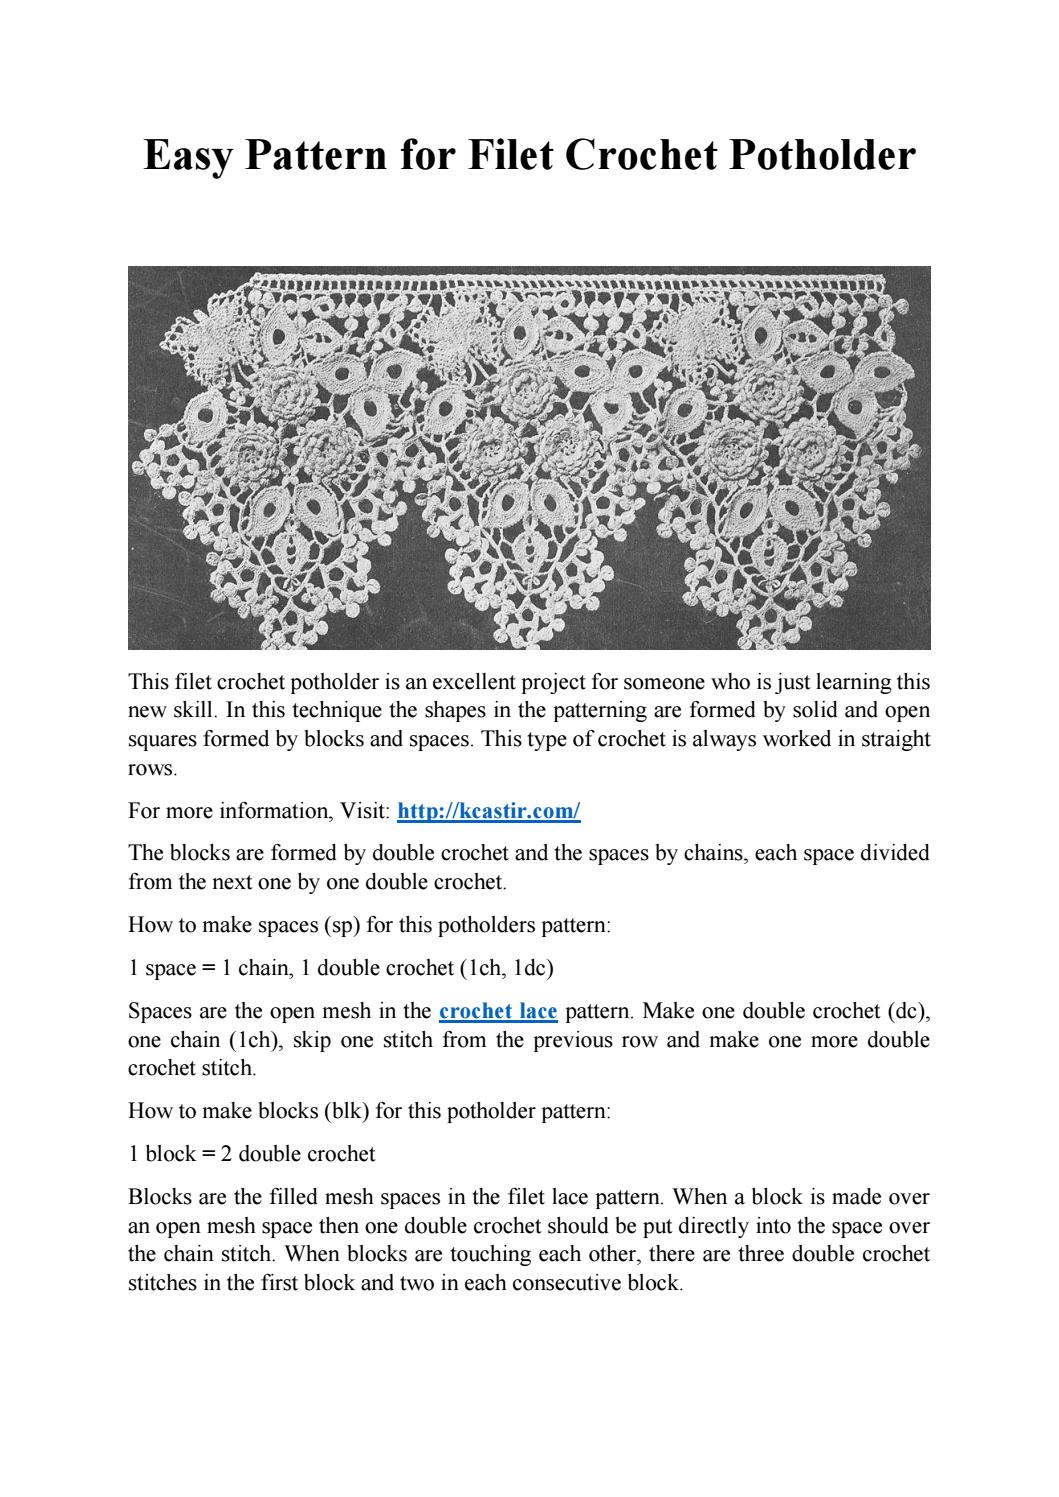 Easy Pattern For Filet Crochet Potholder By Lace Manufacturers Issuu